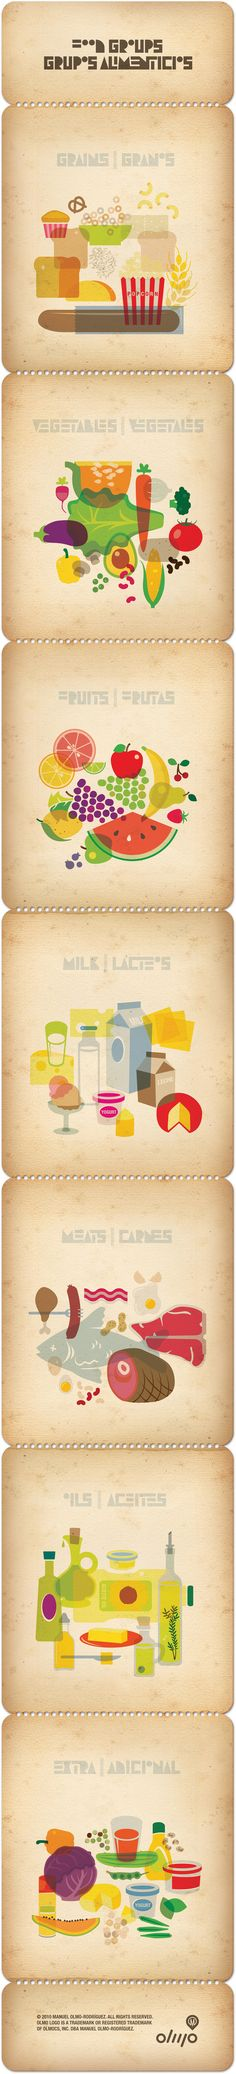 Food Illustrations by Manuel Olmo-Rodriguez. This is a collection of illustrations based on the food groups and nutrition pyramid,   illustrated by Manuel Olmo-Rodriguez 2010 and published by OlmoCS, Inc.